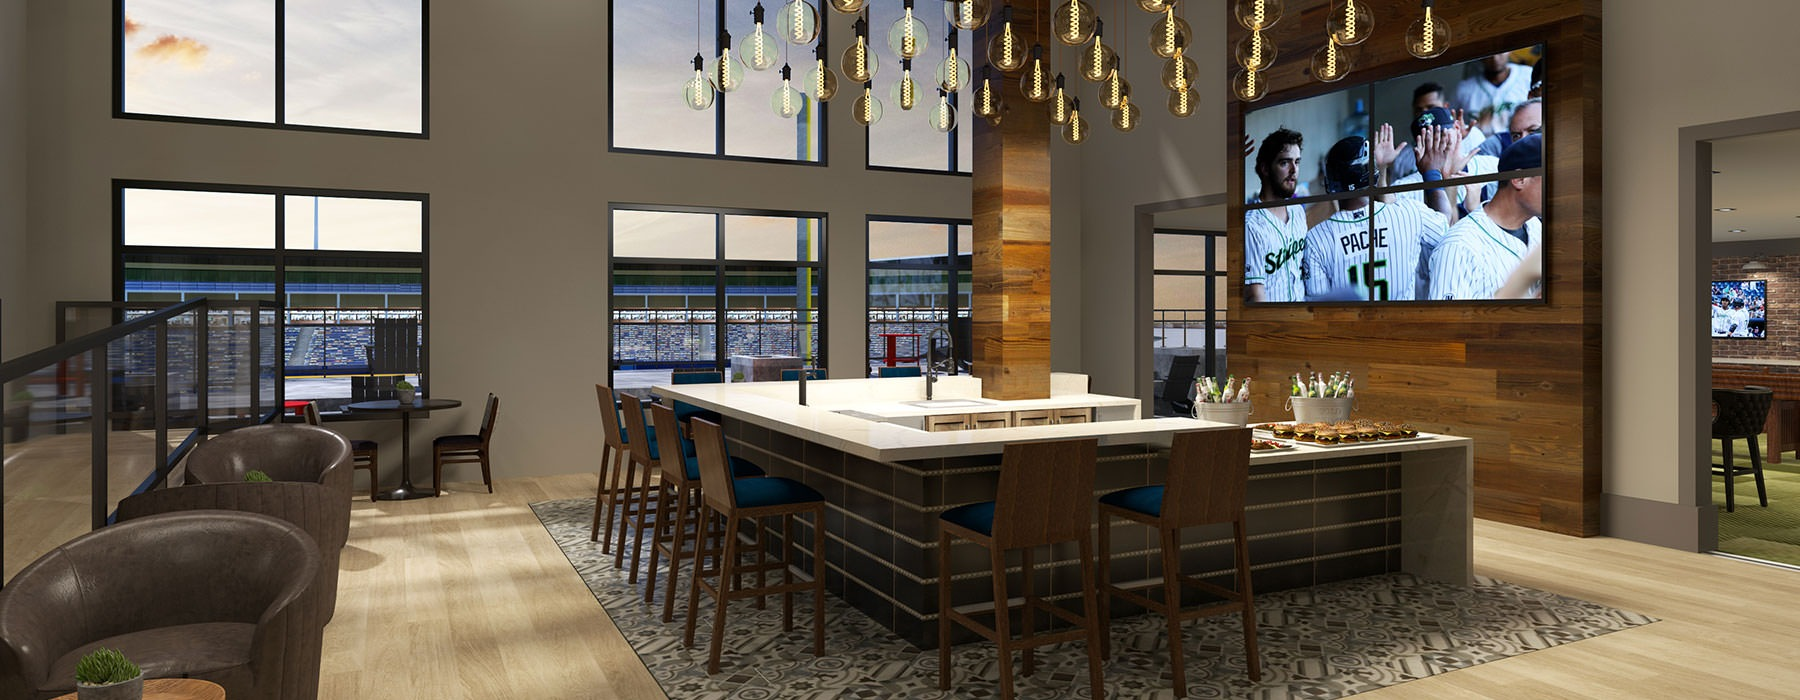 rendering of clubroom showing spacious areas, TVs, and views of stadium